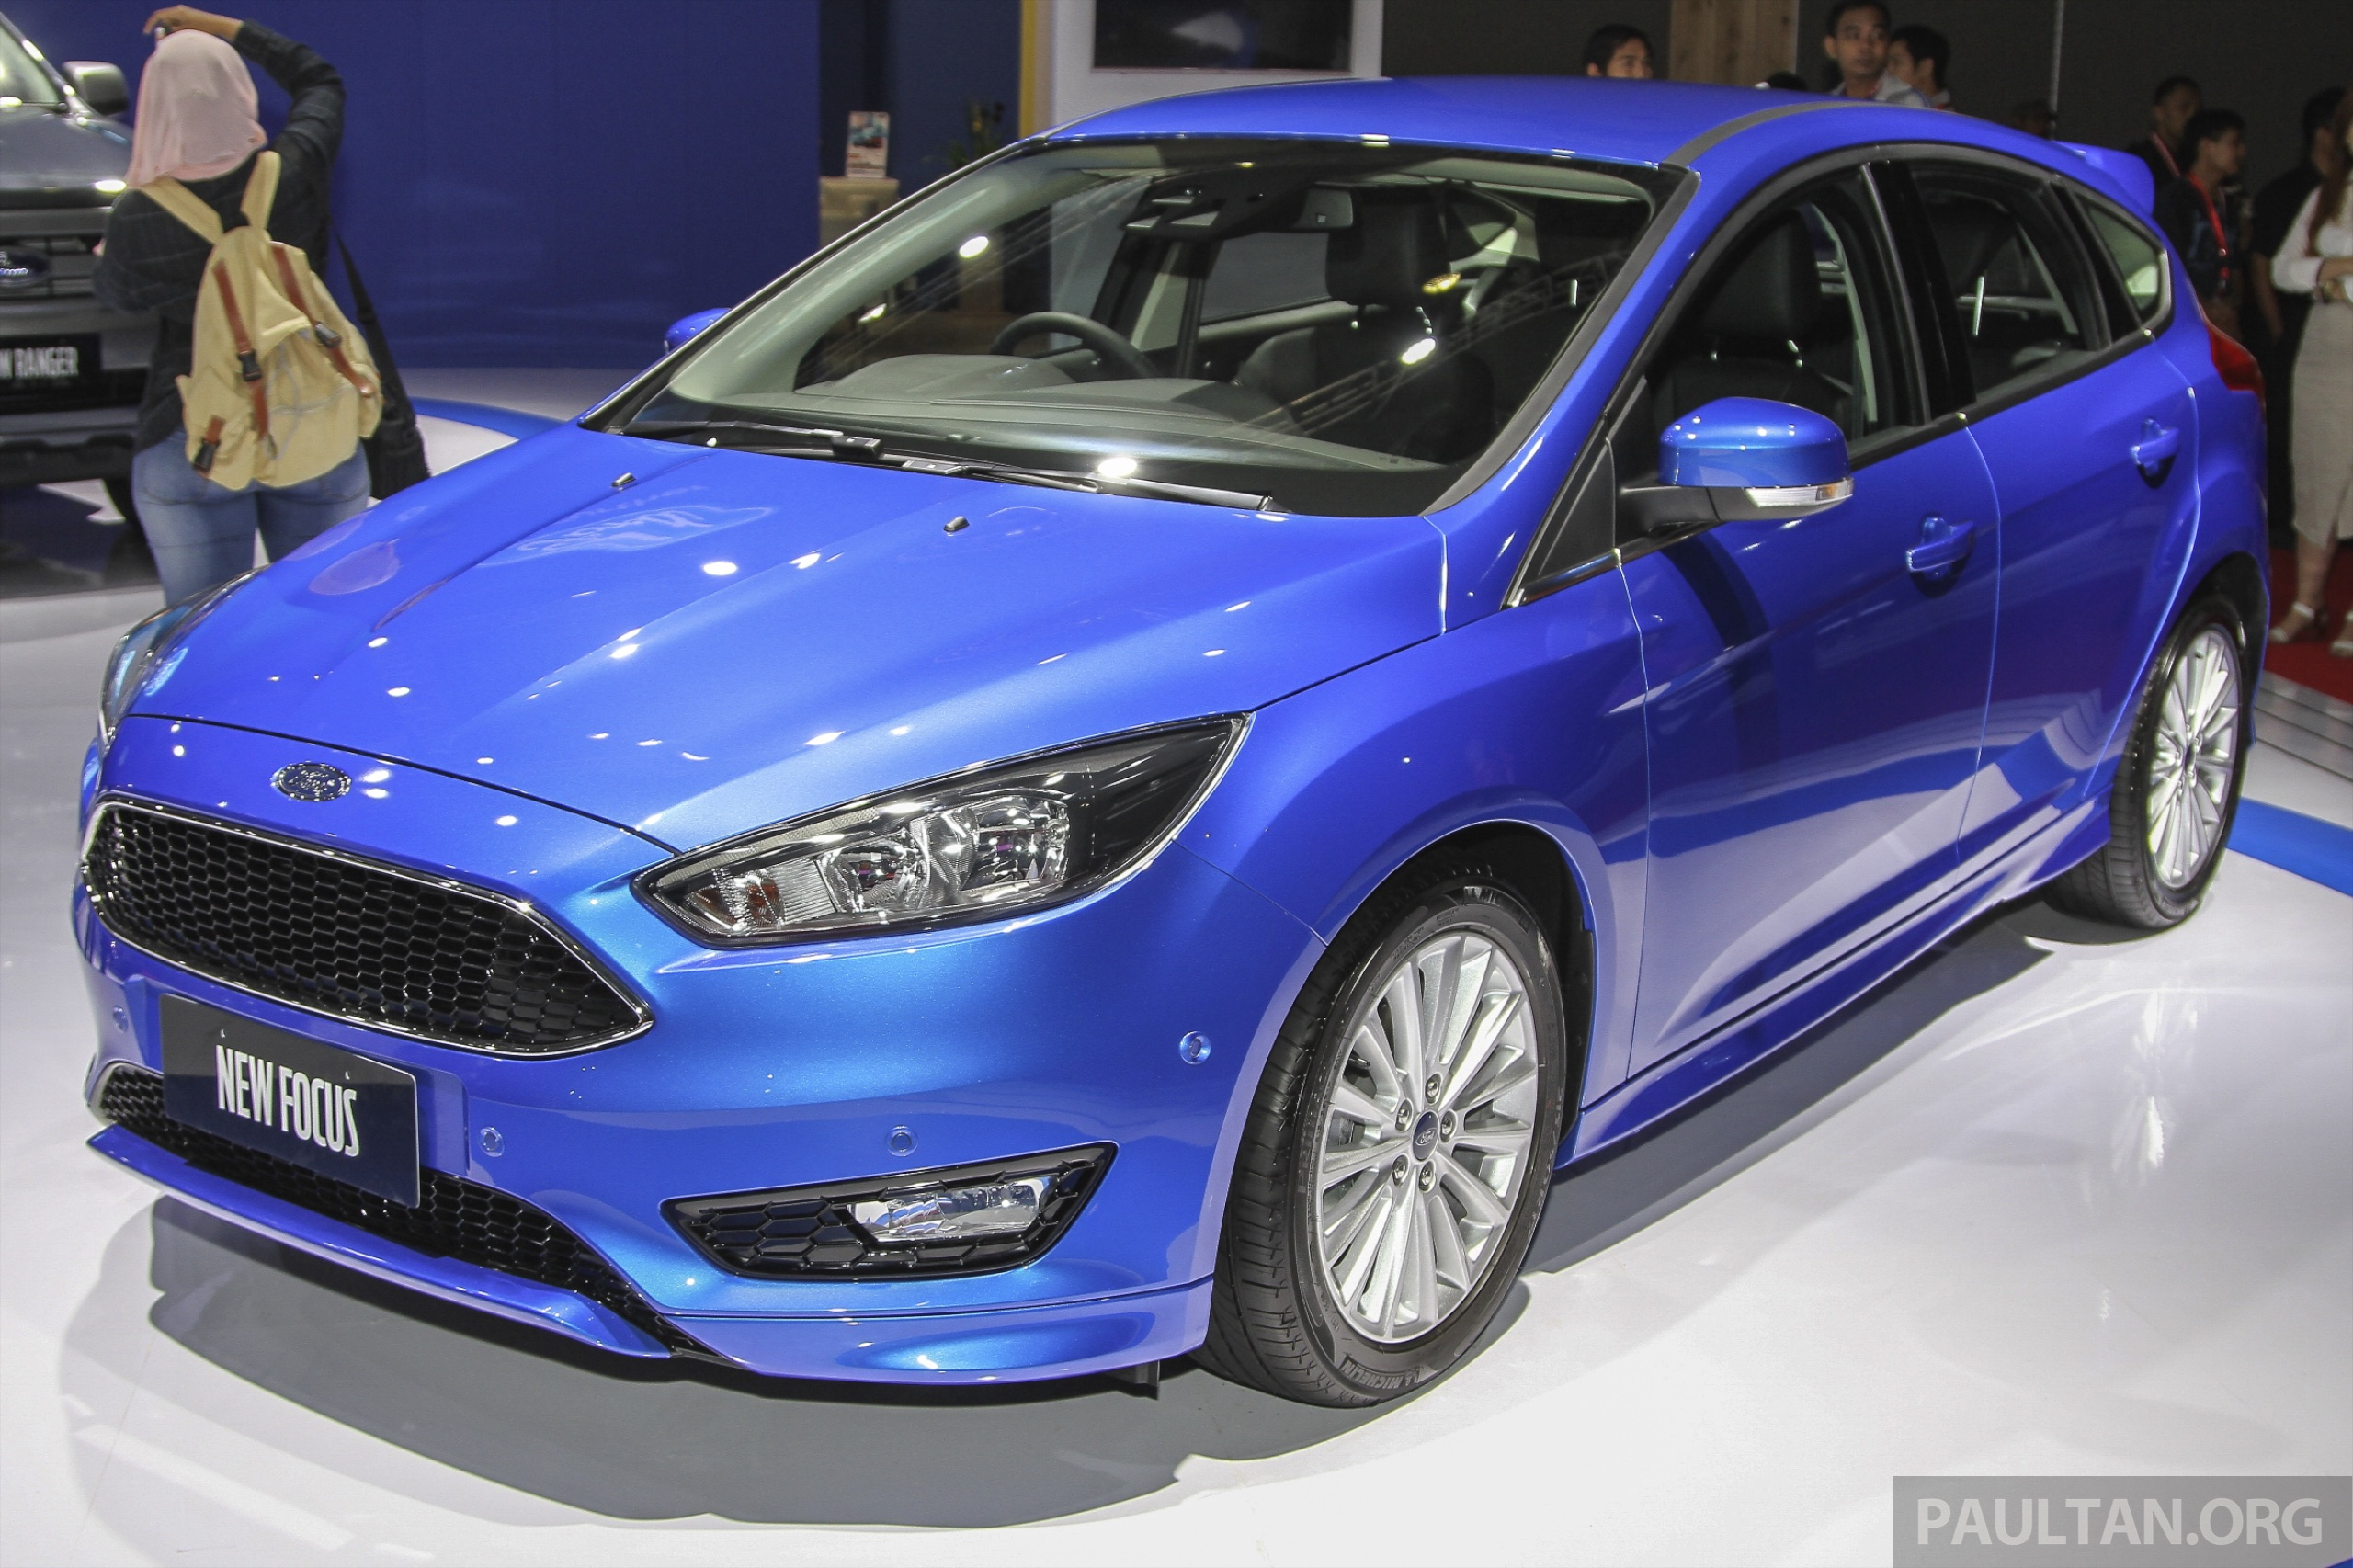 iims 2015 ford focus facelift makes asean debut 1 5 ecoboost turbo 6 speed auto from rm120k. Black Bedroom Furniture Sets. Home Design Ideas